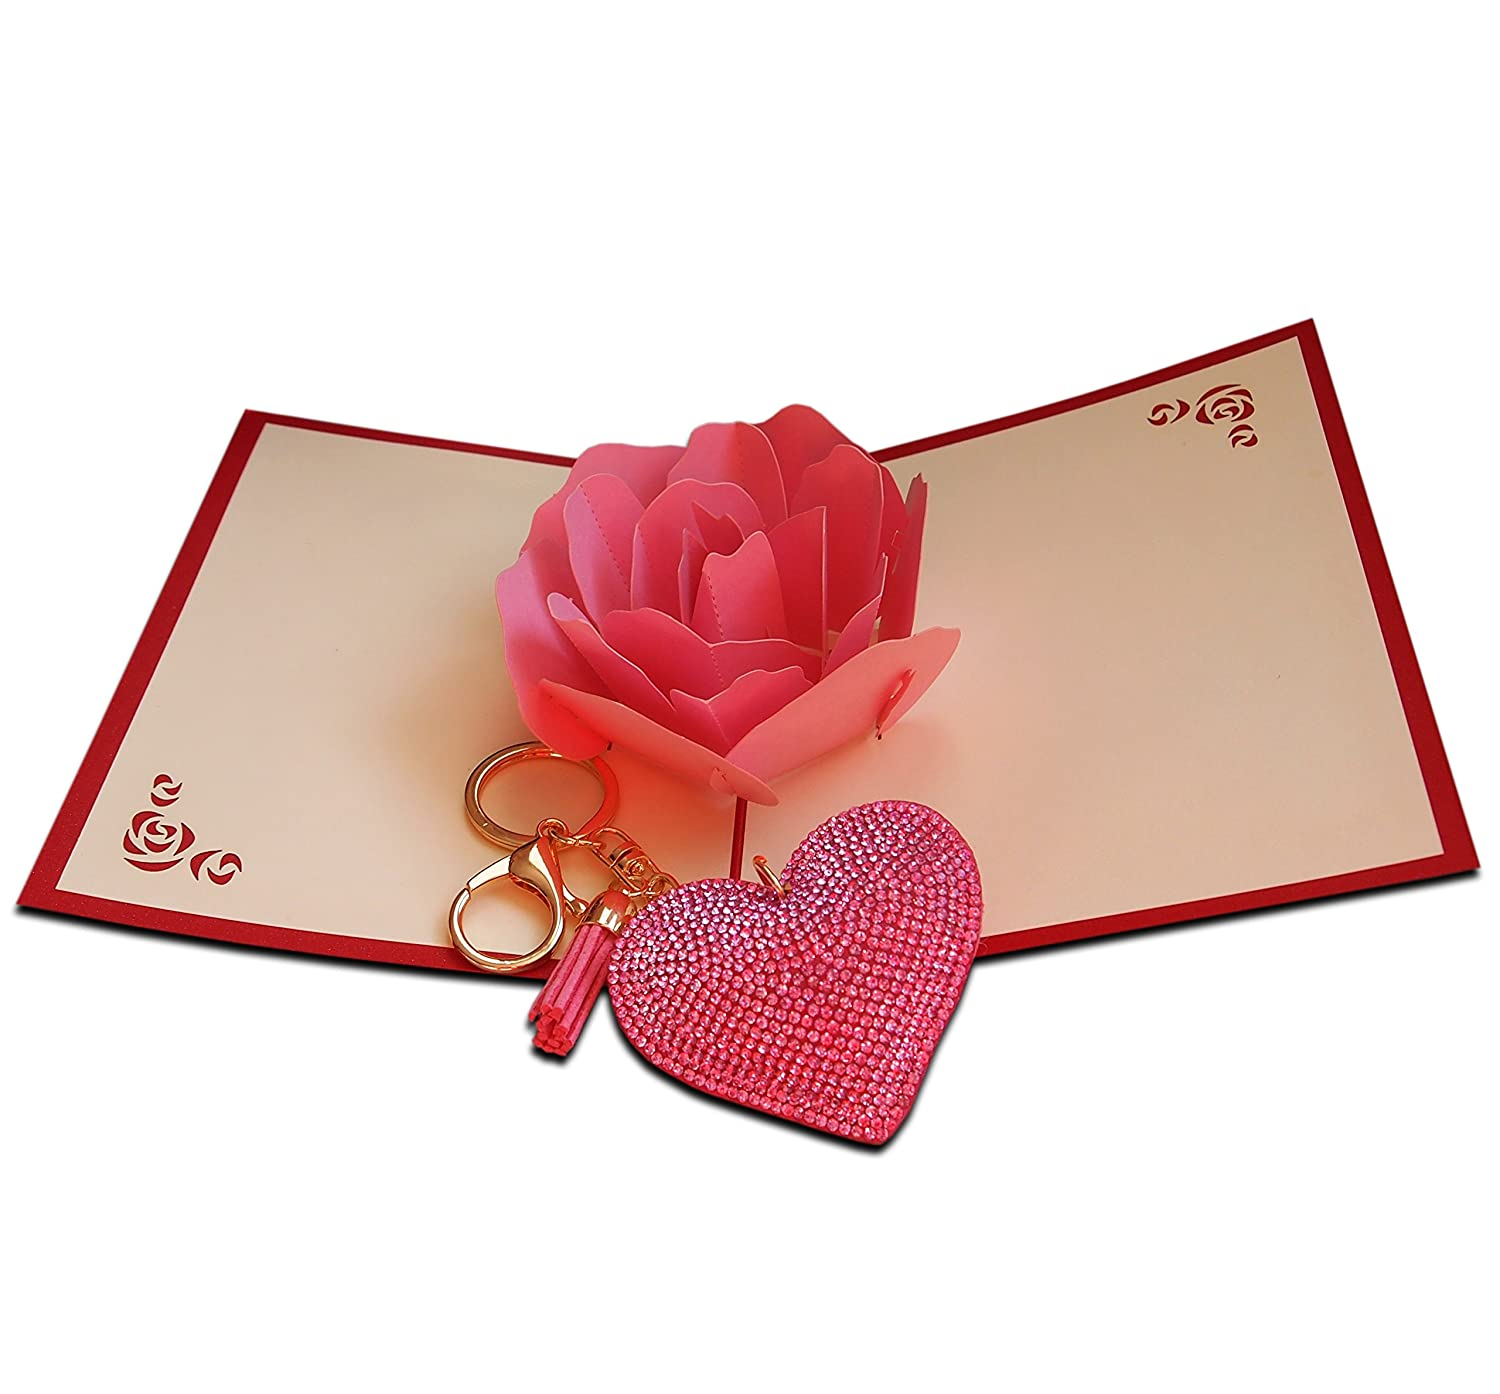 Big Pink Rose 3d Pop Up Greetings Card Set With Romantic Love Heart